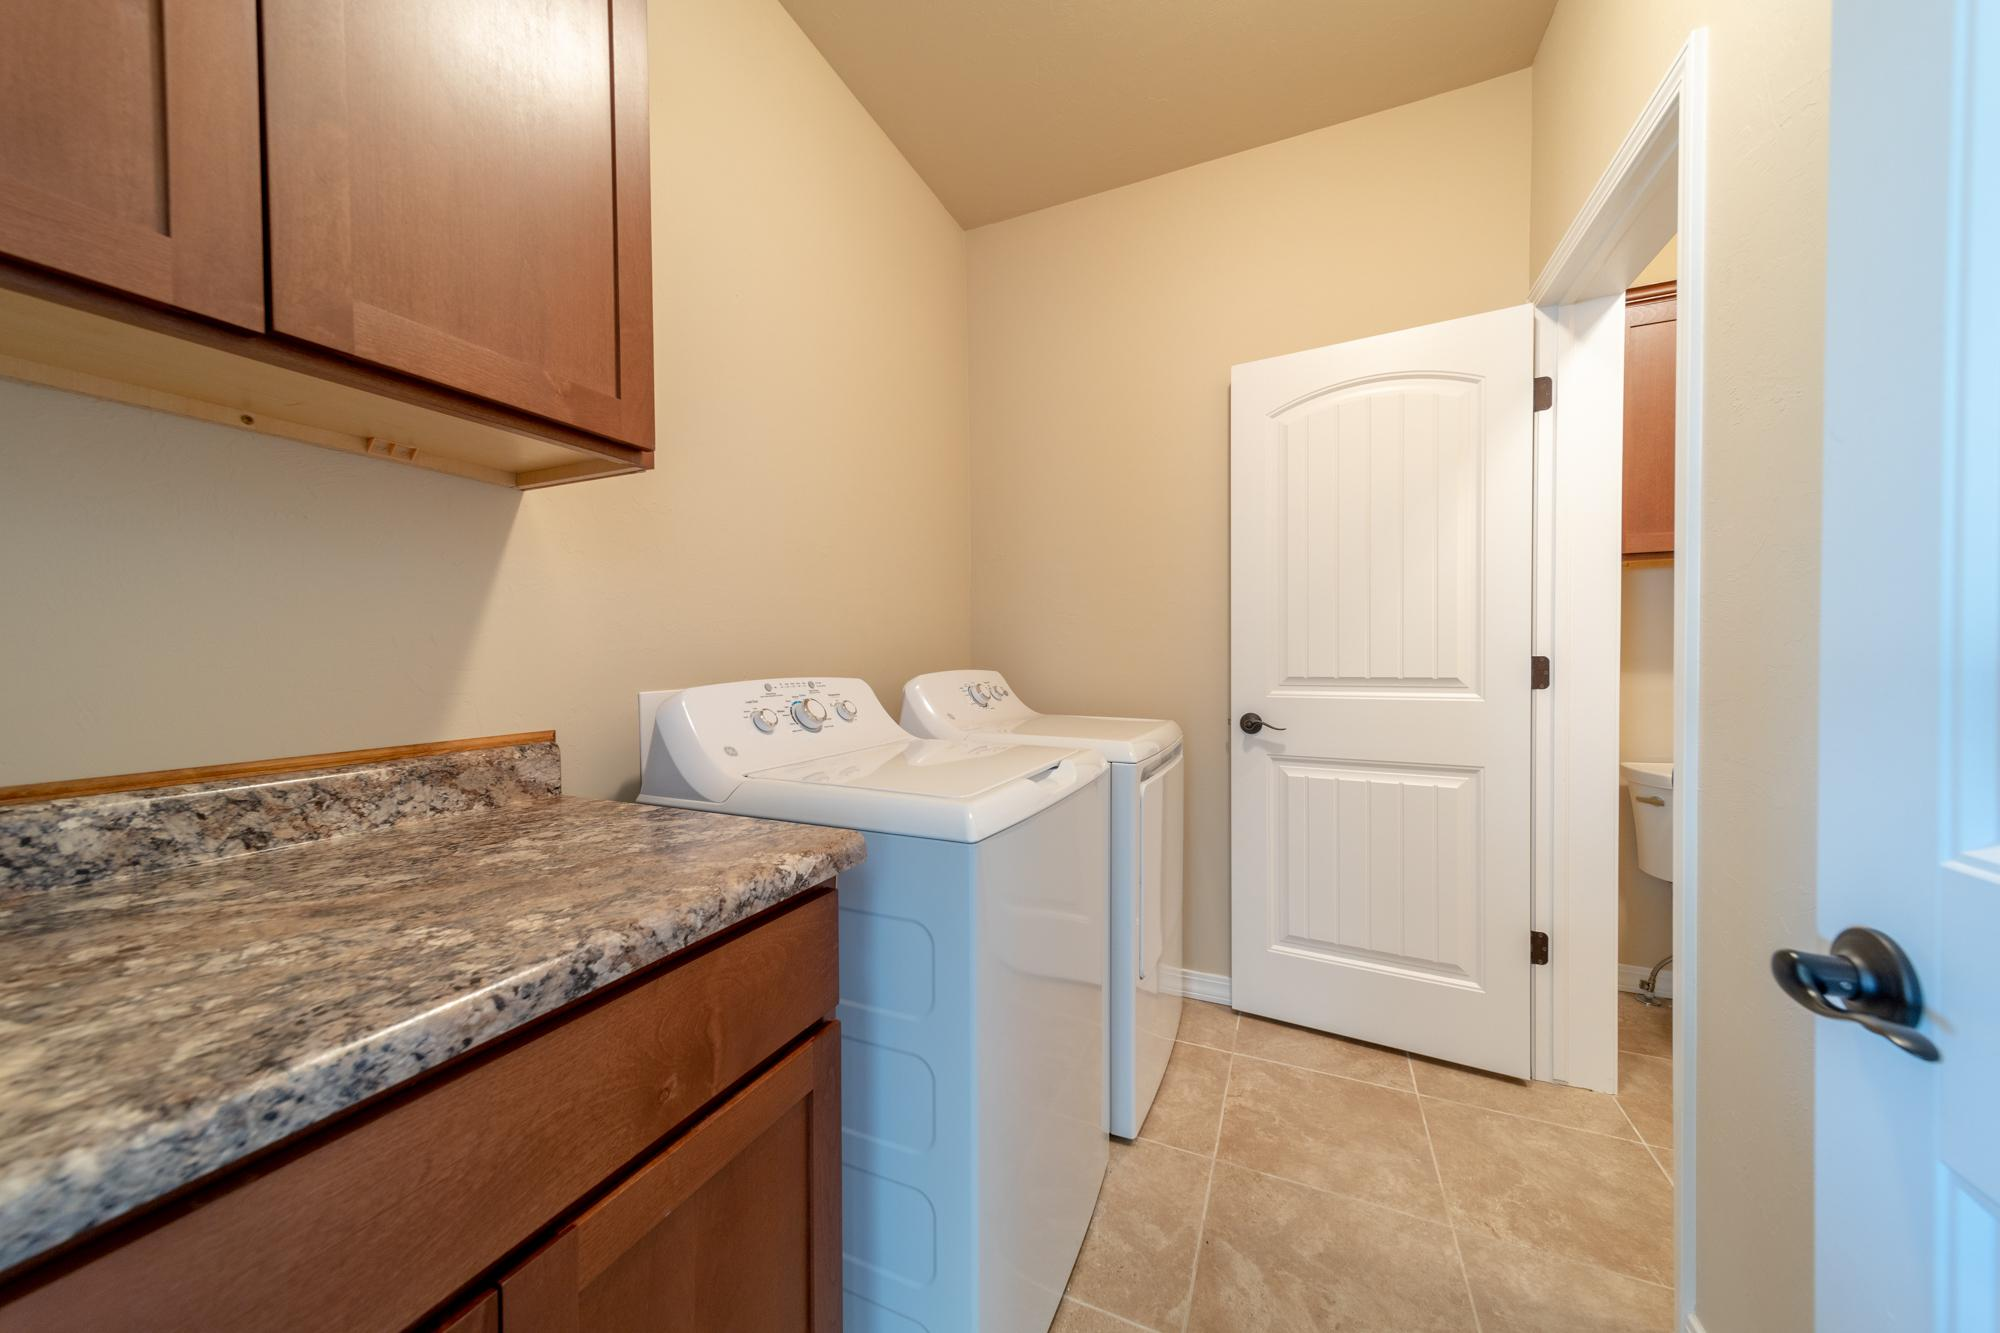 Laundry Room with Counter - 597 Cobble Dr Montrose, CO - Atha Team MLS Colorado